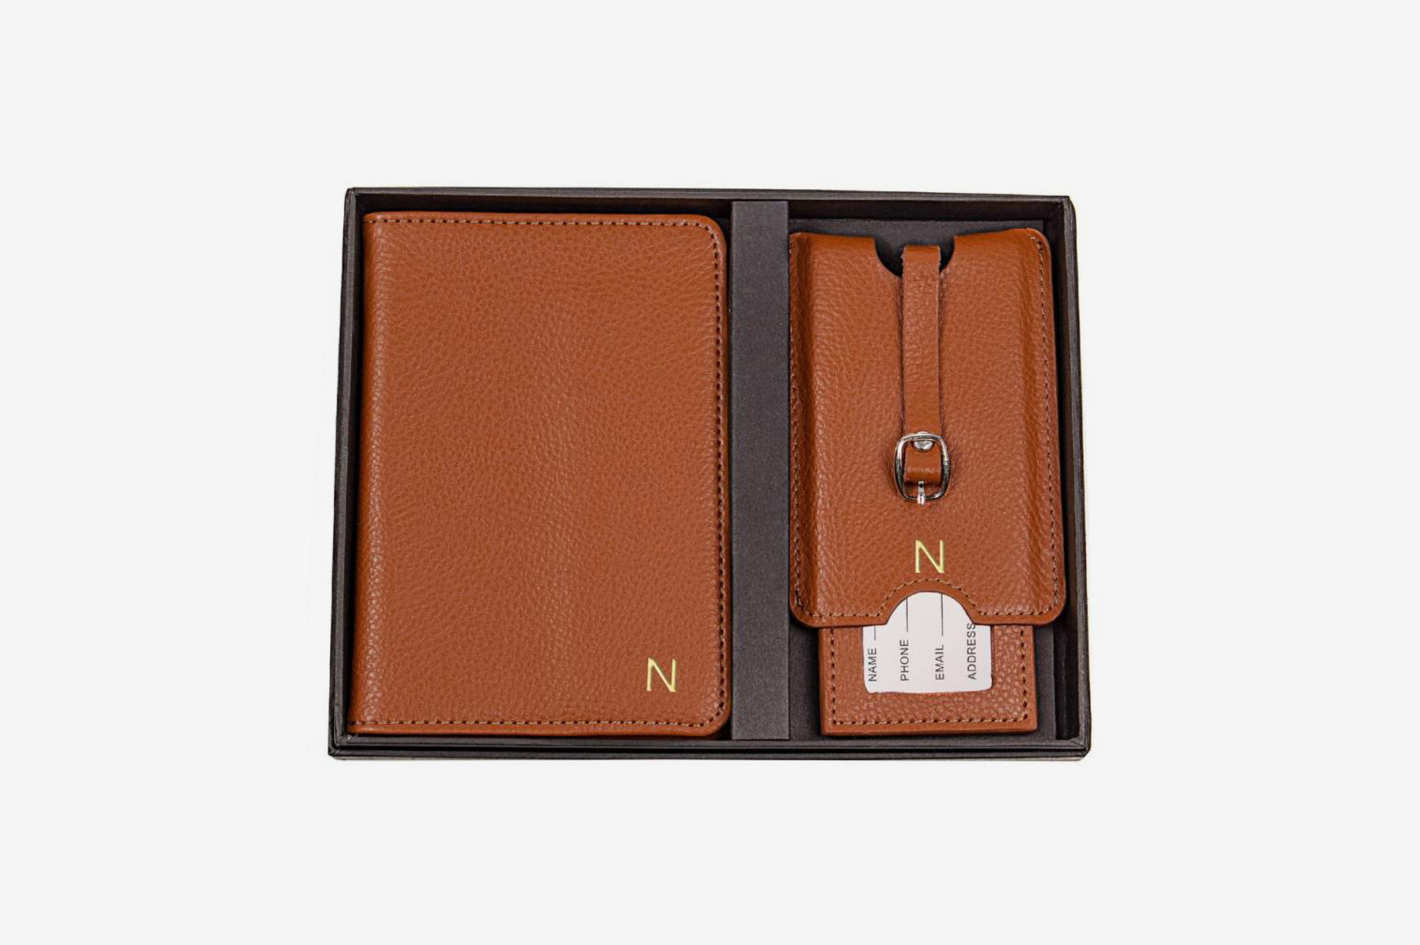 Cathy's Concepts Passport Case and Luggage Tag